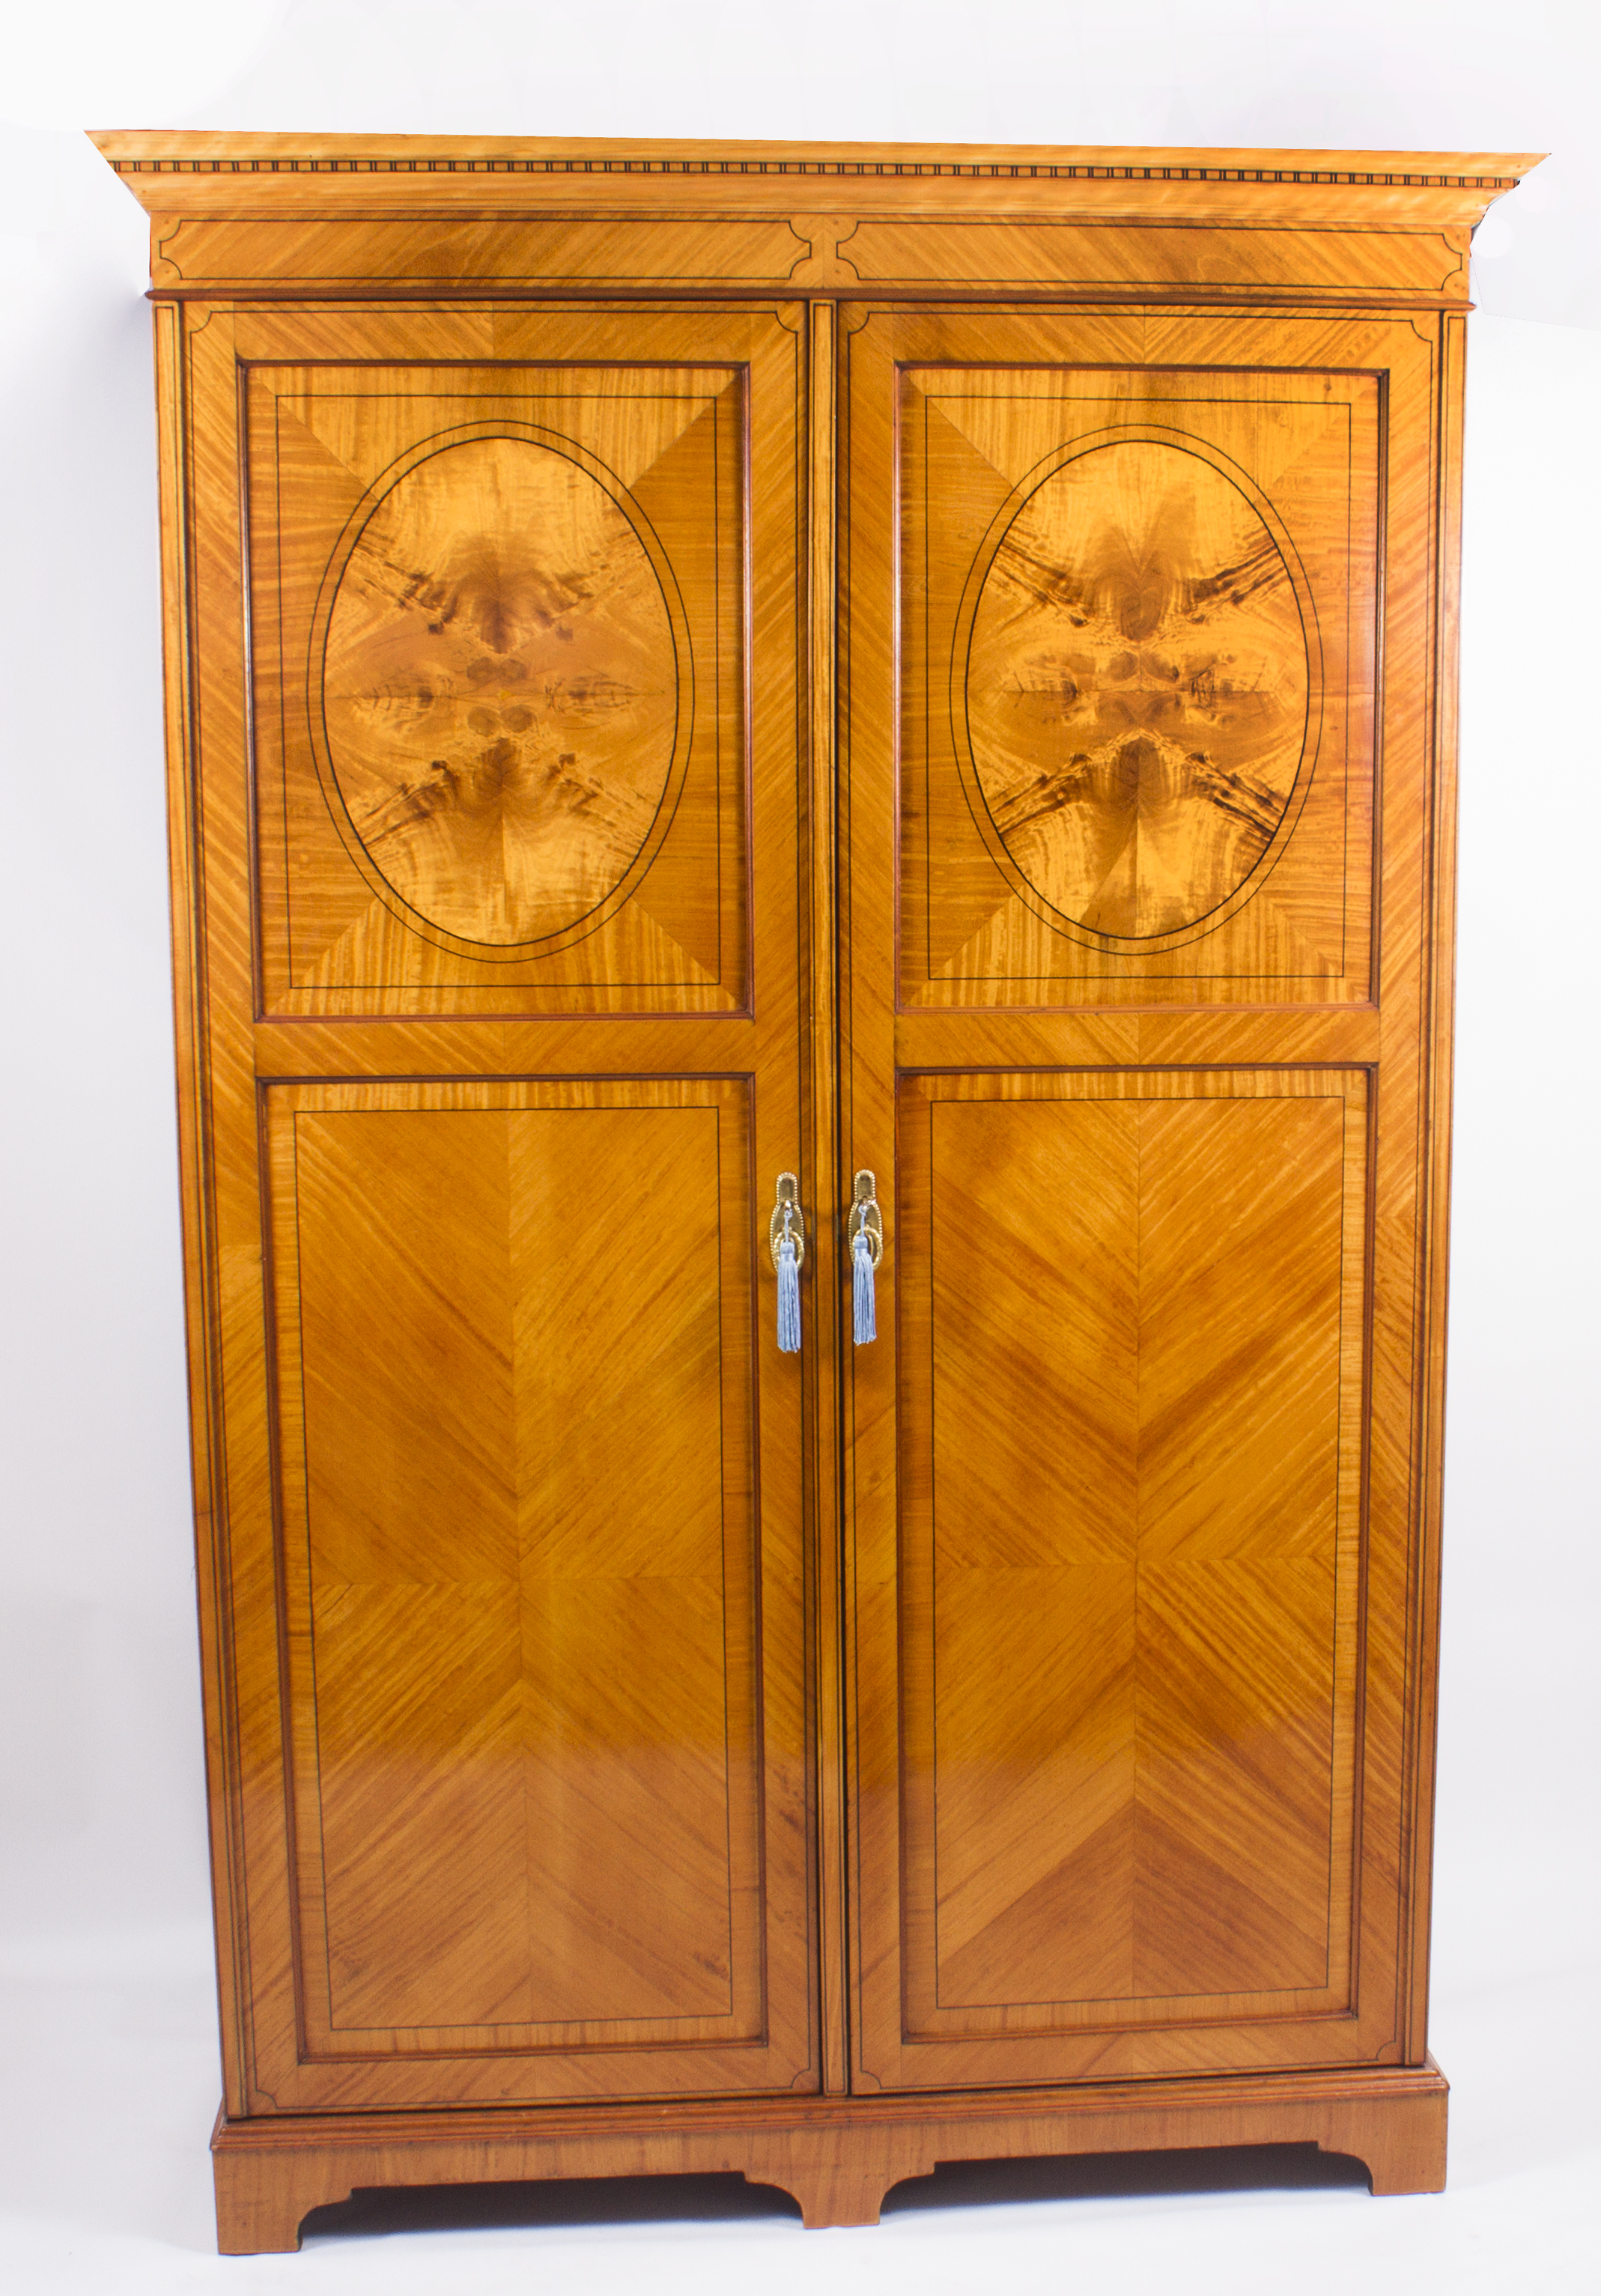 Edwardian/victorian Wardrobe Beautiful In Colour Edwardian (1901-1910) Armoires/wardrobes